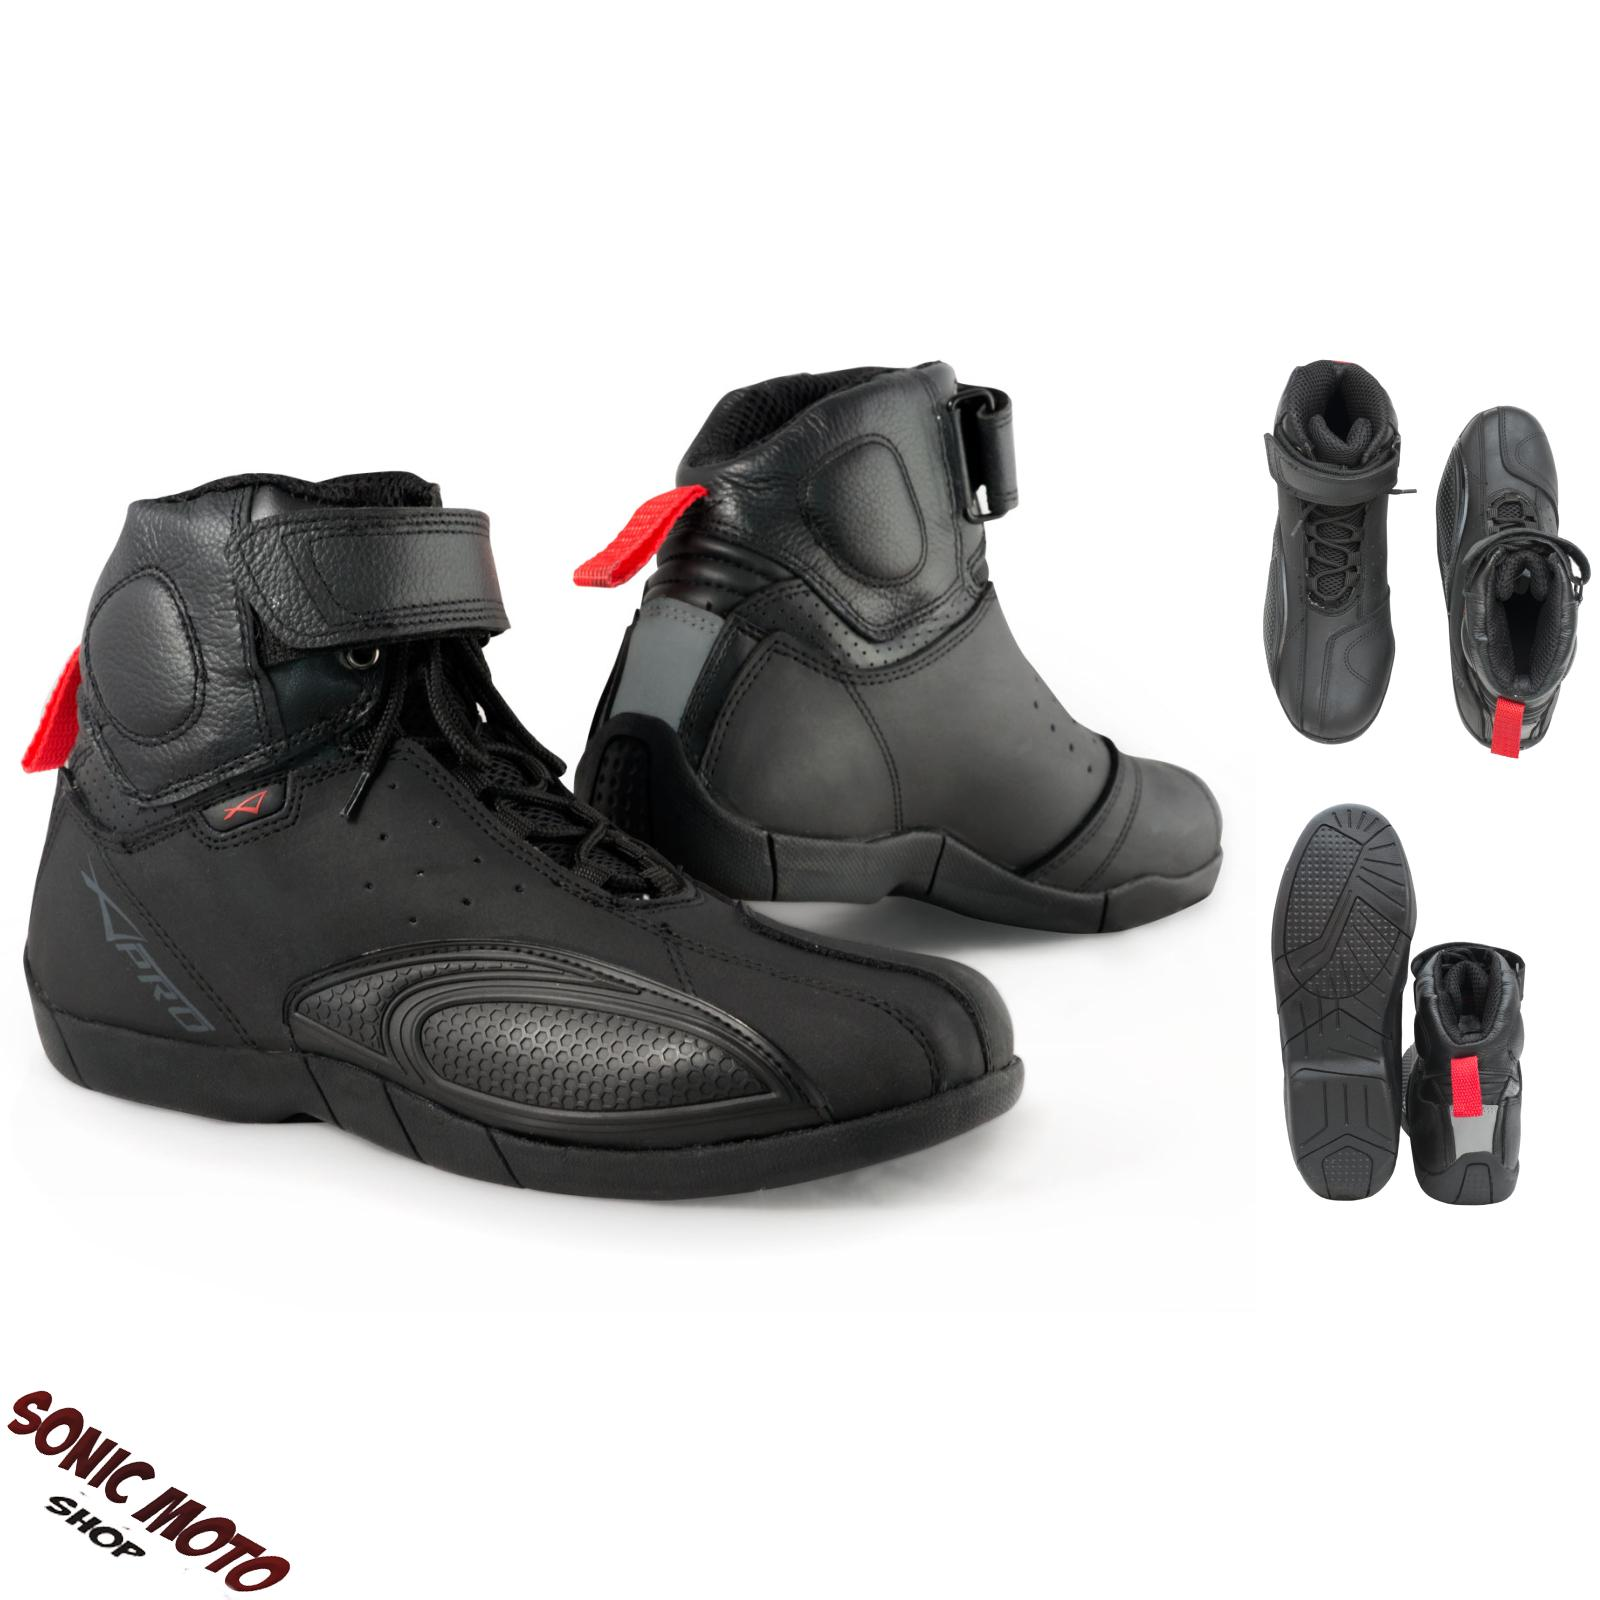 Motorcycle Boots Sports Motorbike Shoes Sport Leather Black A-Pro | EBay